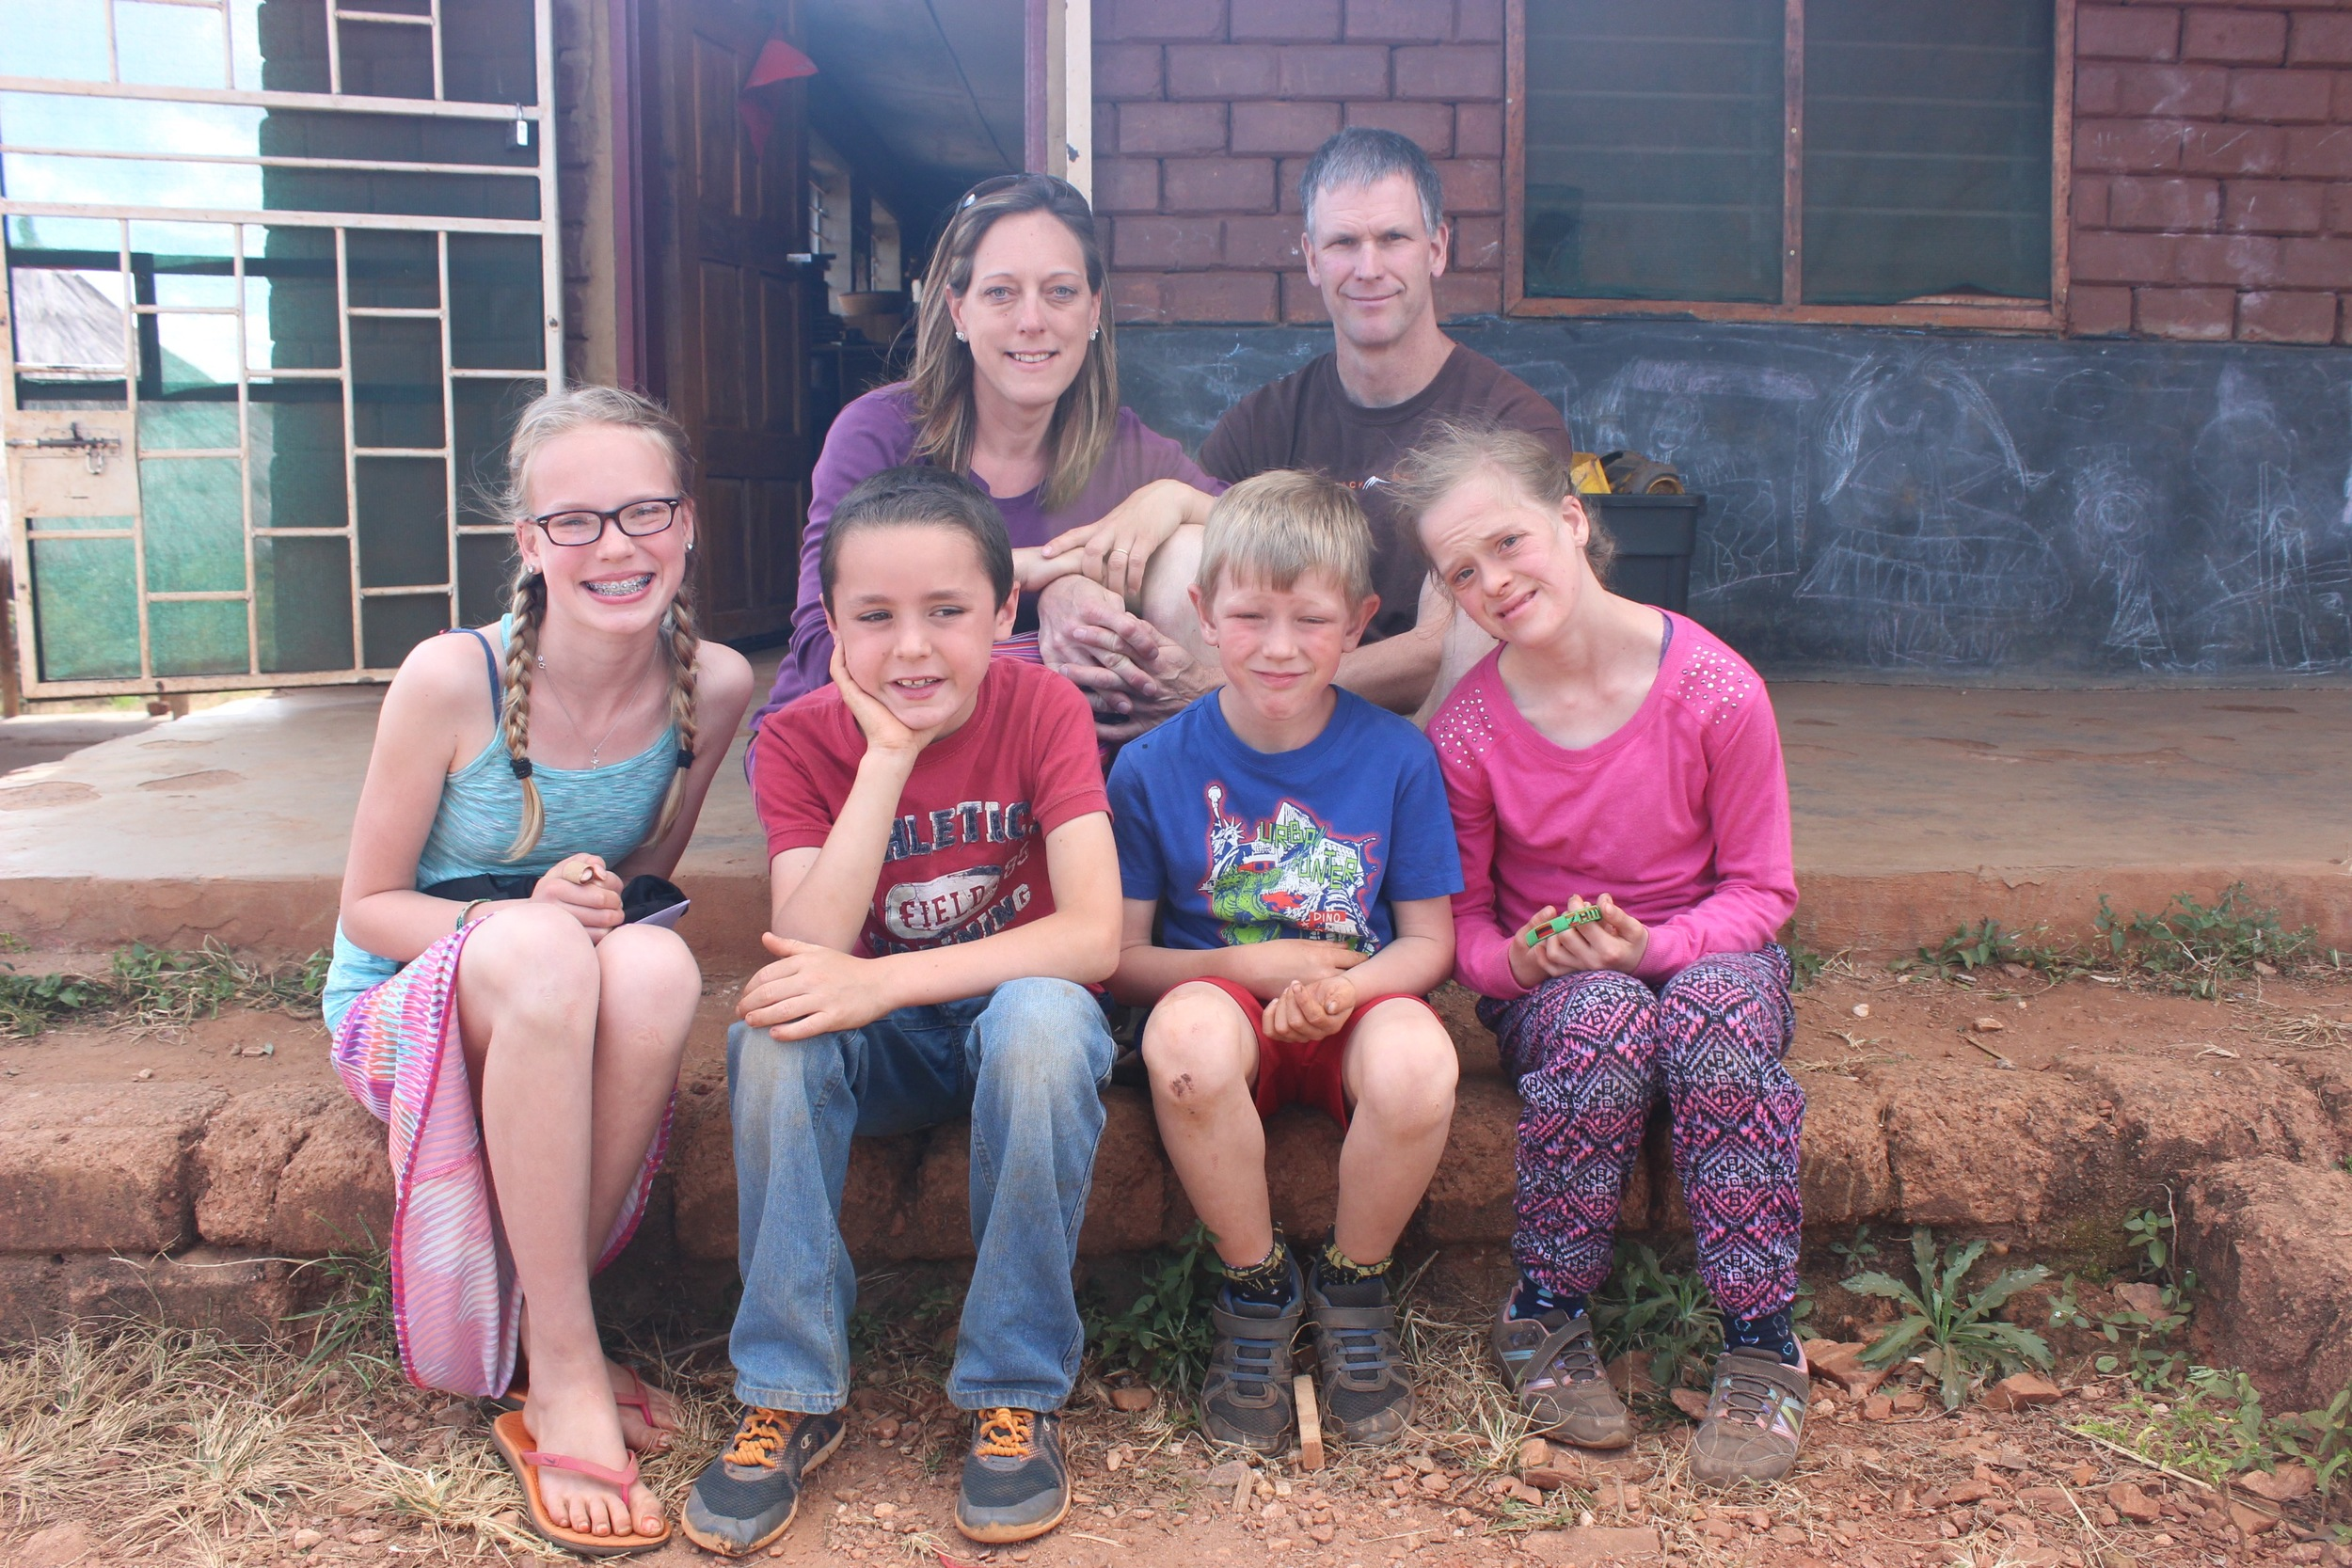 The Kuipers Family (From L-R: Jessie, Joe, Cecilia, Samuel, Gabe, and Grace)